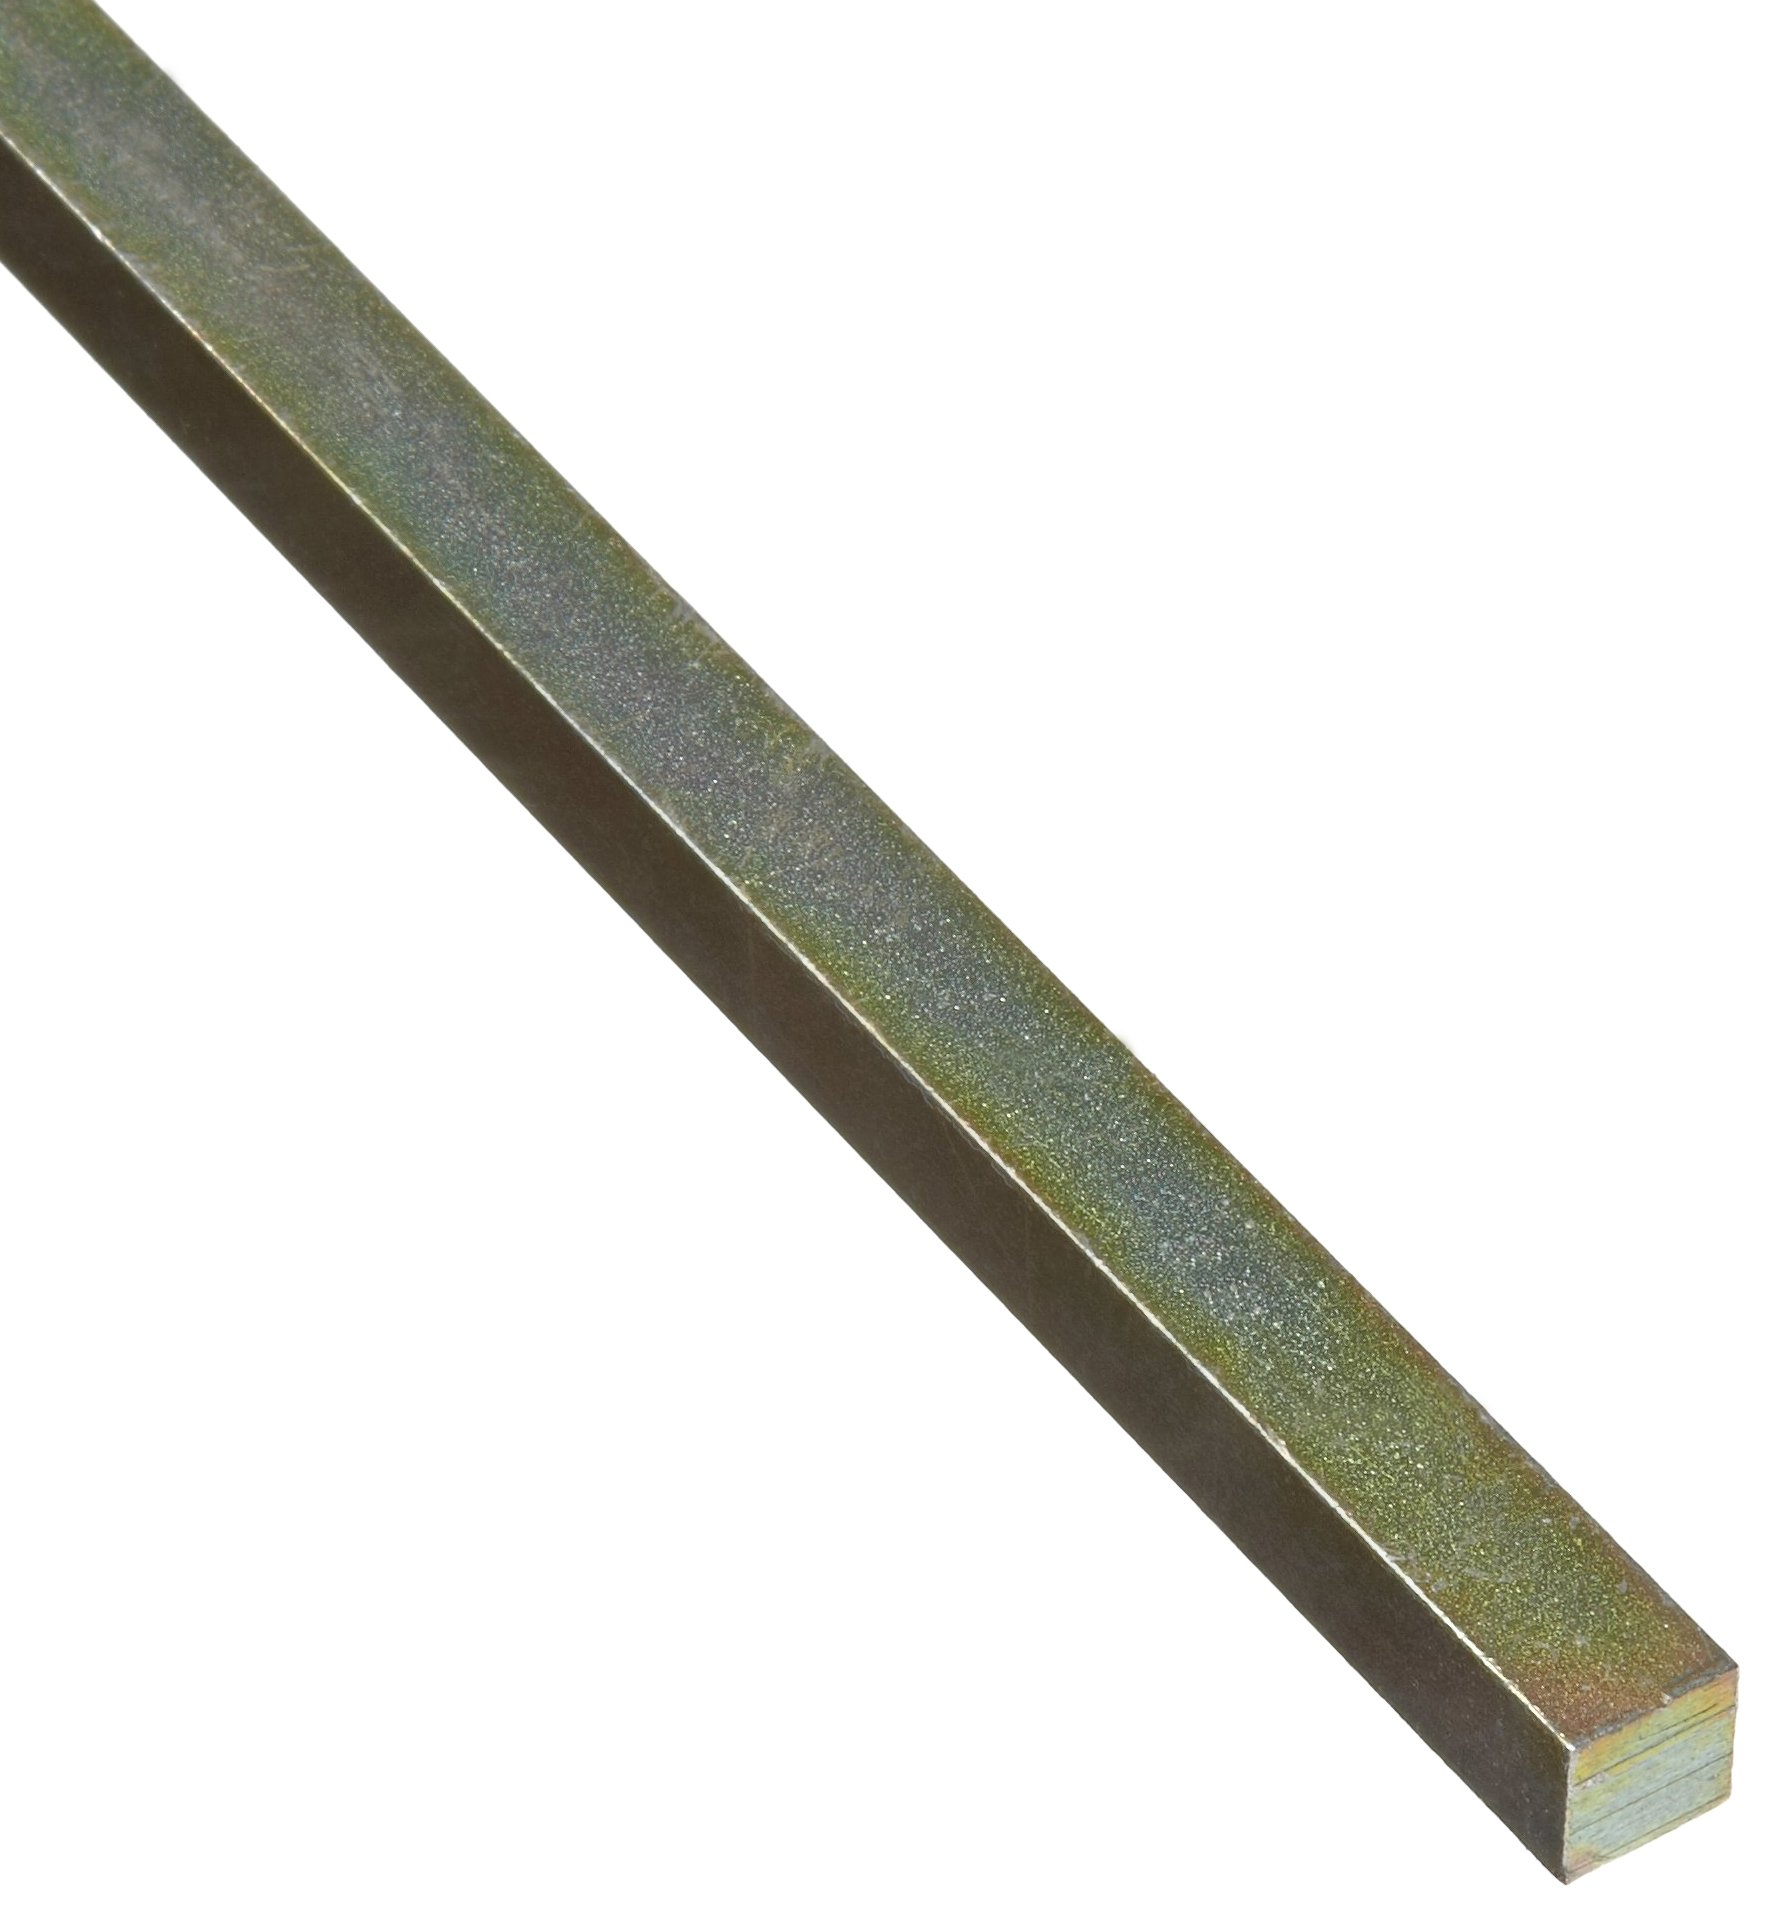 Steel Key Stock Pack of 6 Standard Tolerance 5 mm Width 12 Length 5 mm Thickness Metric Gold Dichromate Finish